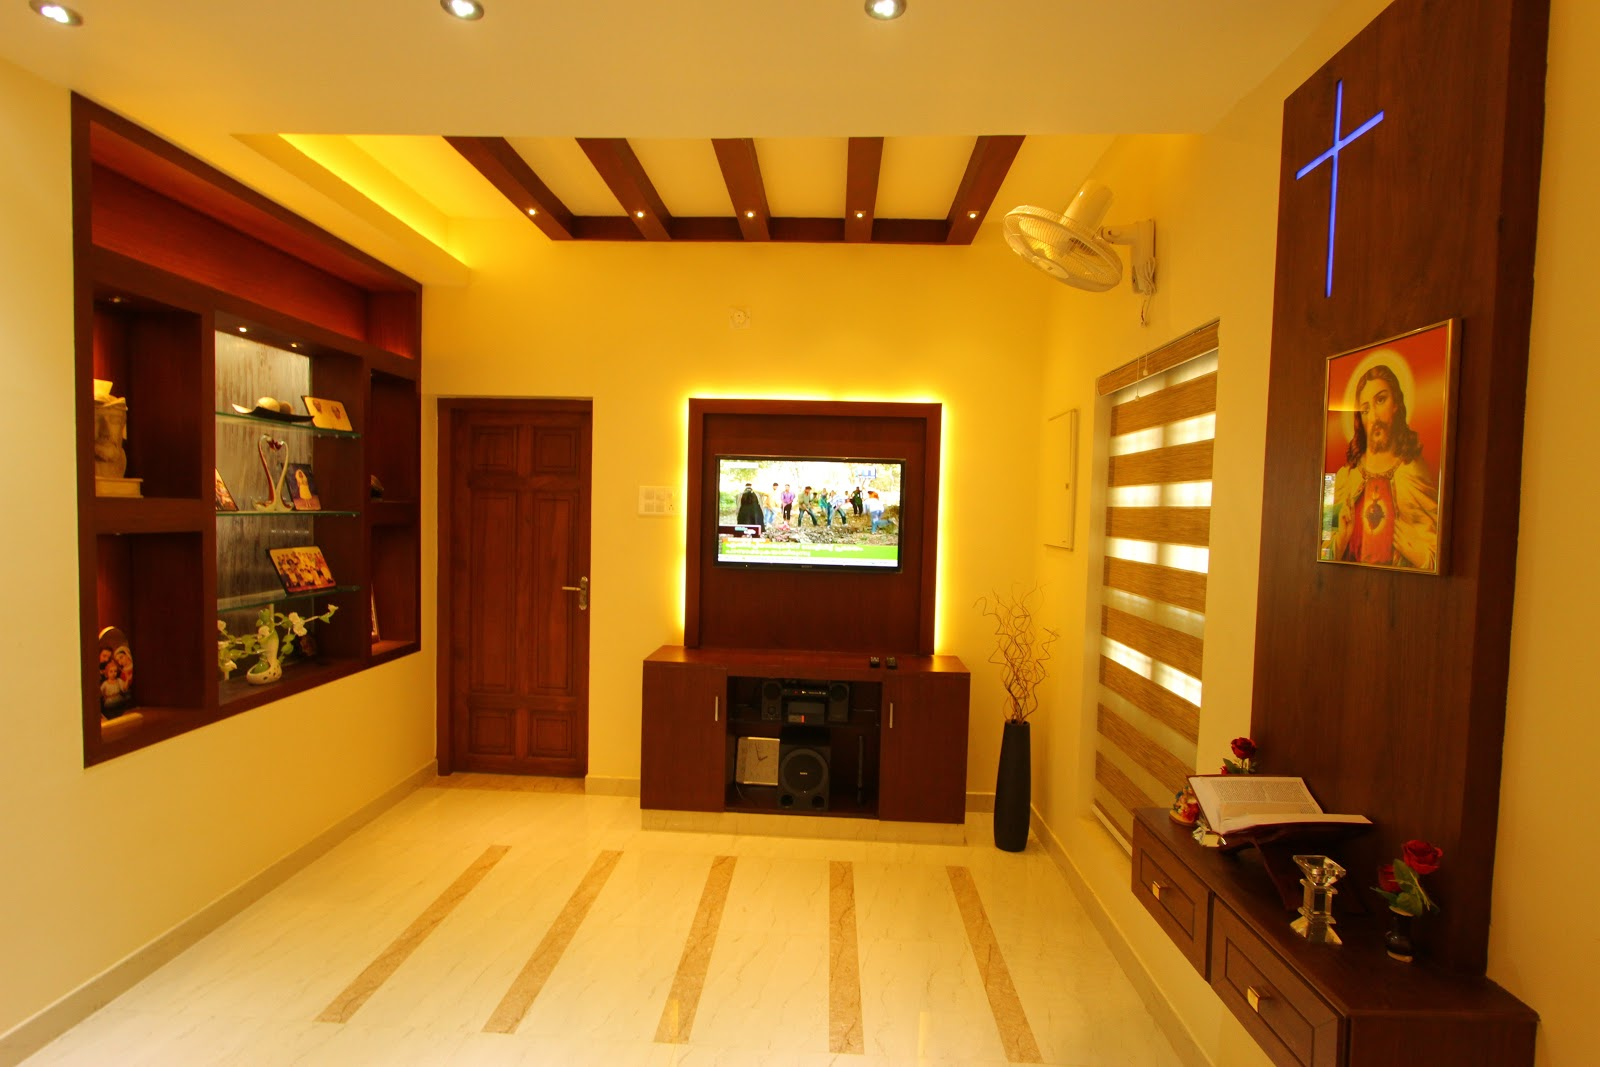 Shilpakala interiors award winning home interior design Flat interior design images